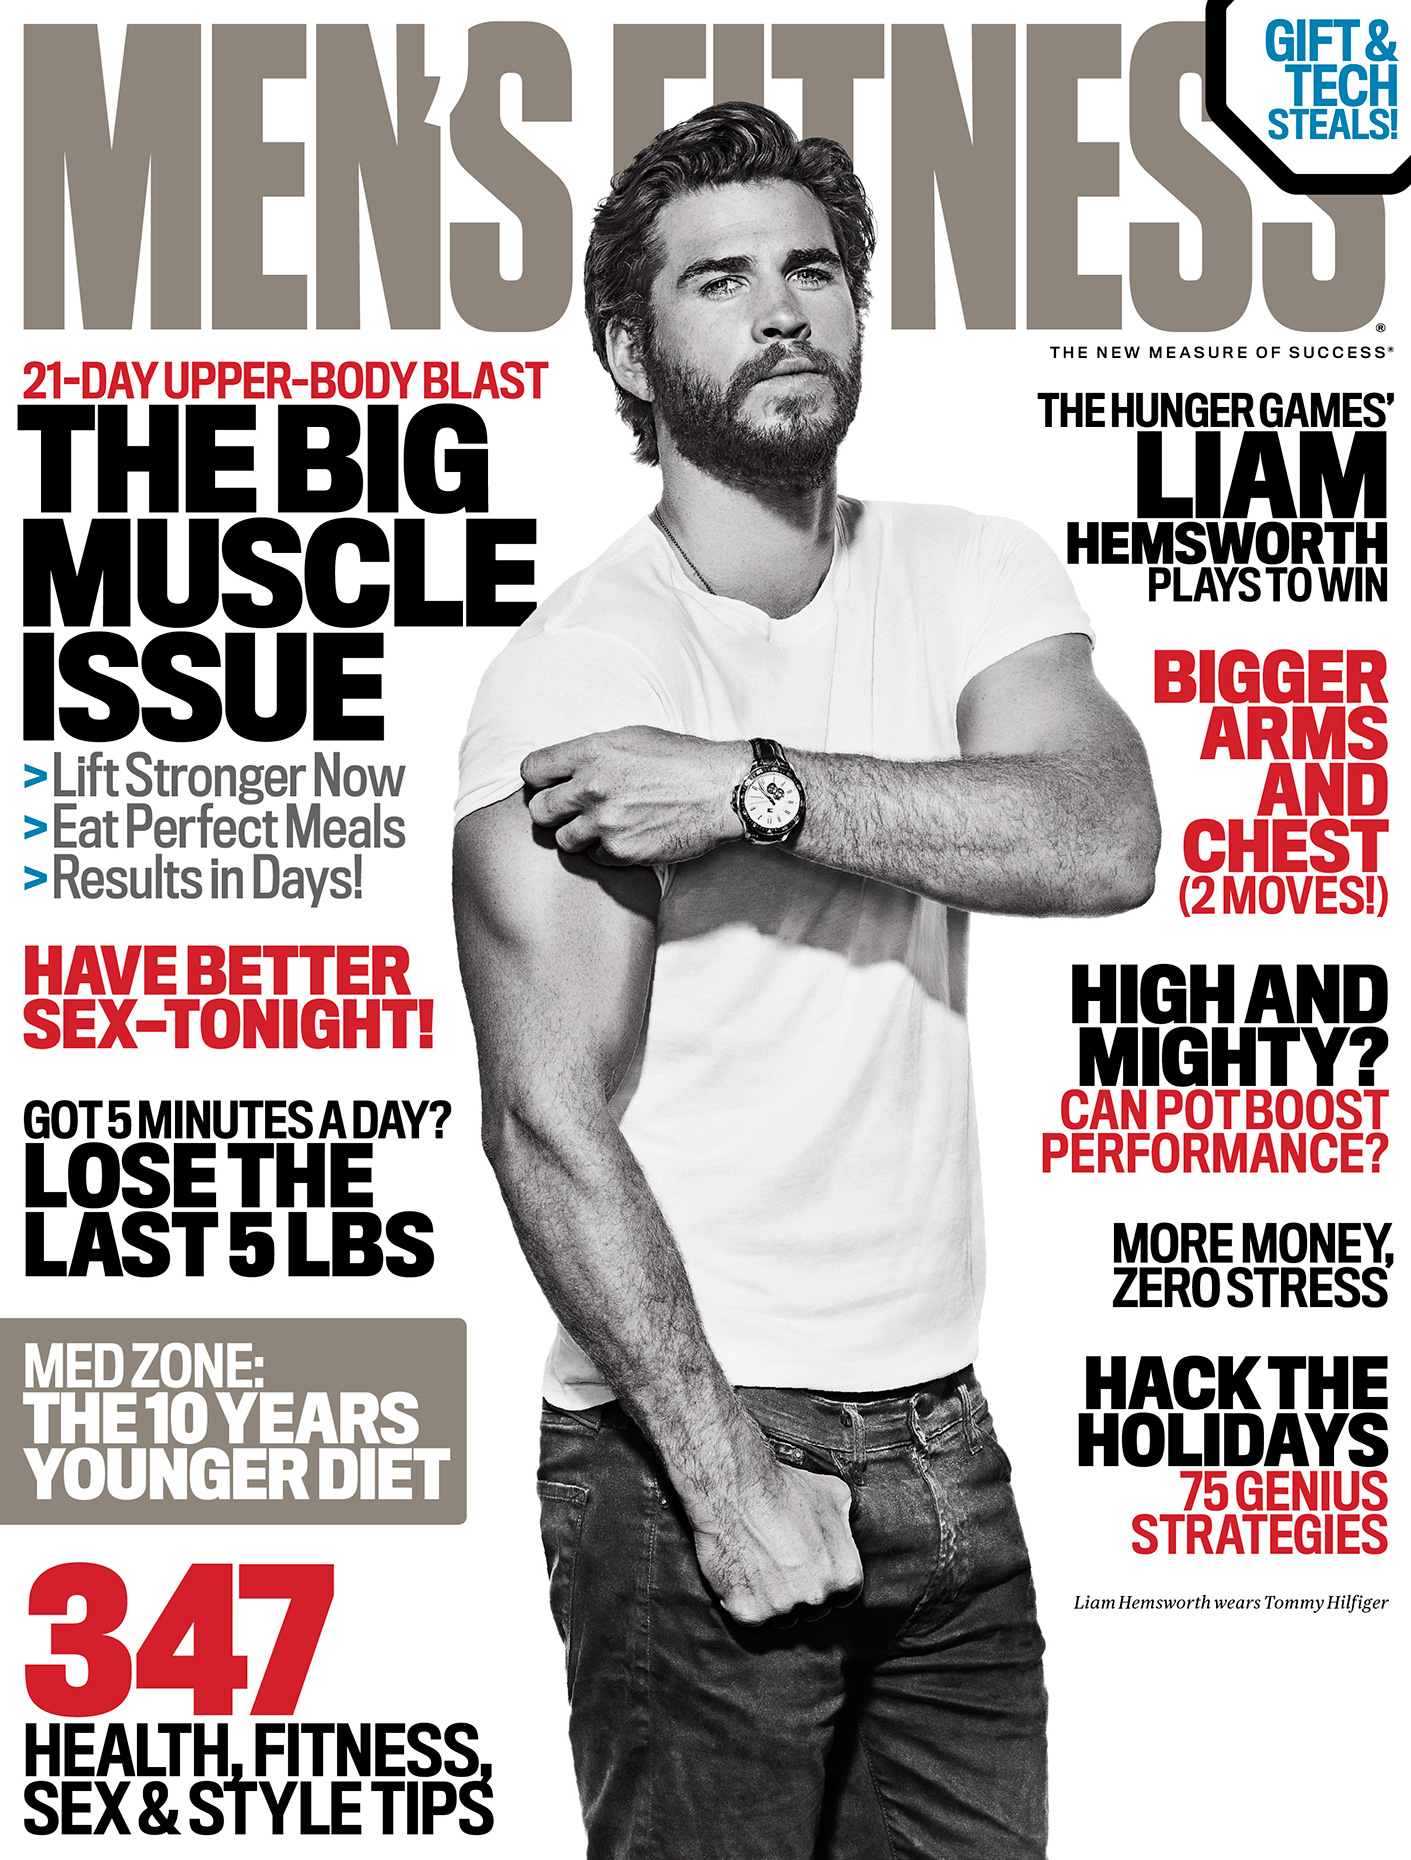 mensfitness_liamhemsworth